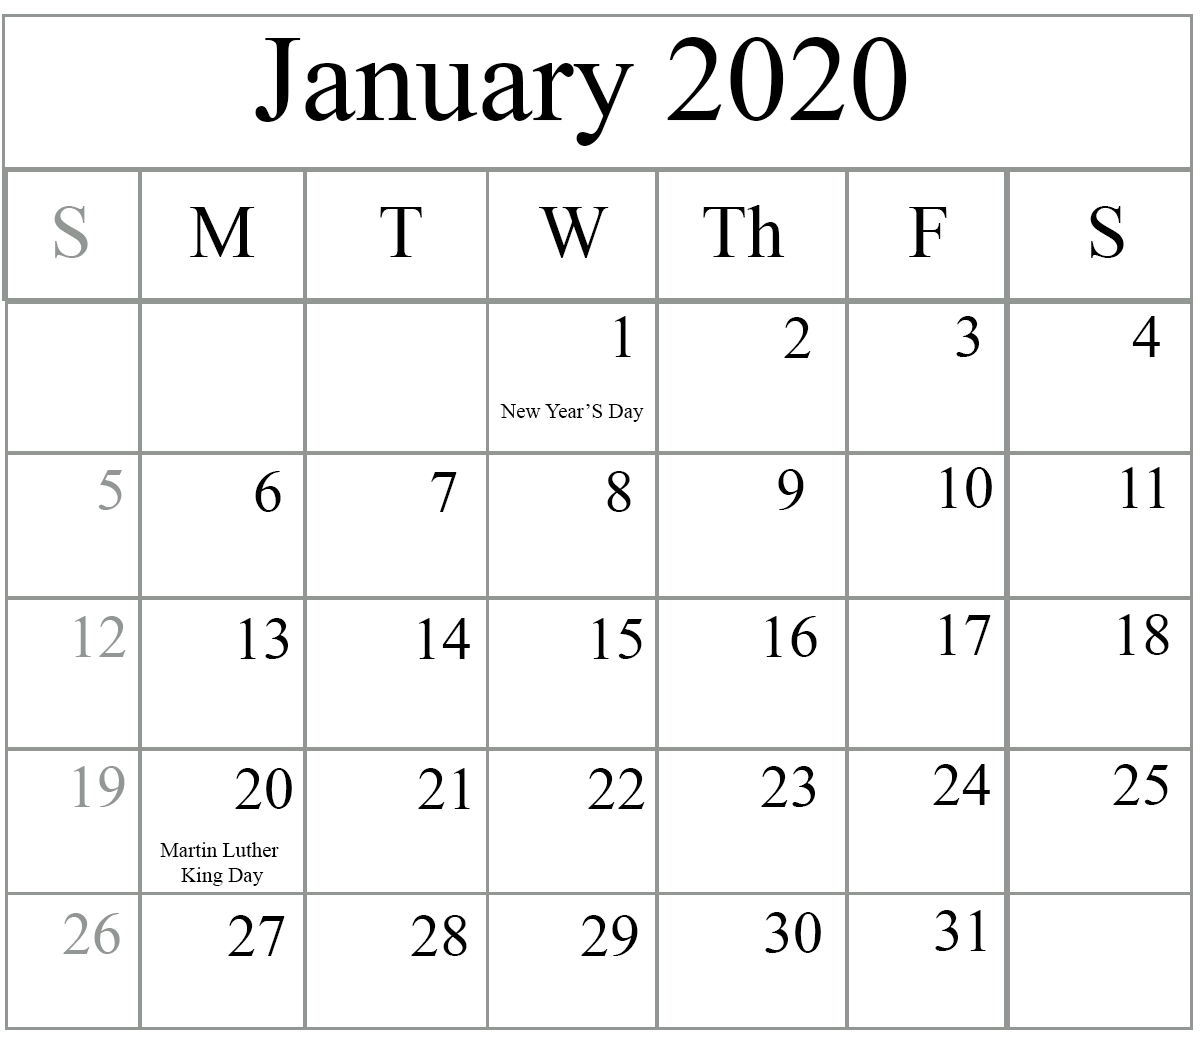 Calendario 2020 Word.Top January 2020 Calendar Pdf Word Excel Template